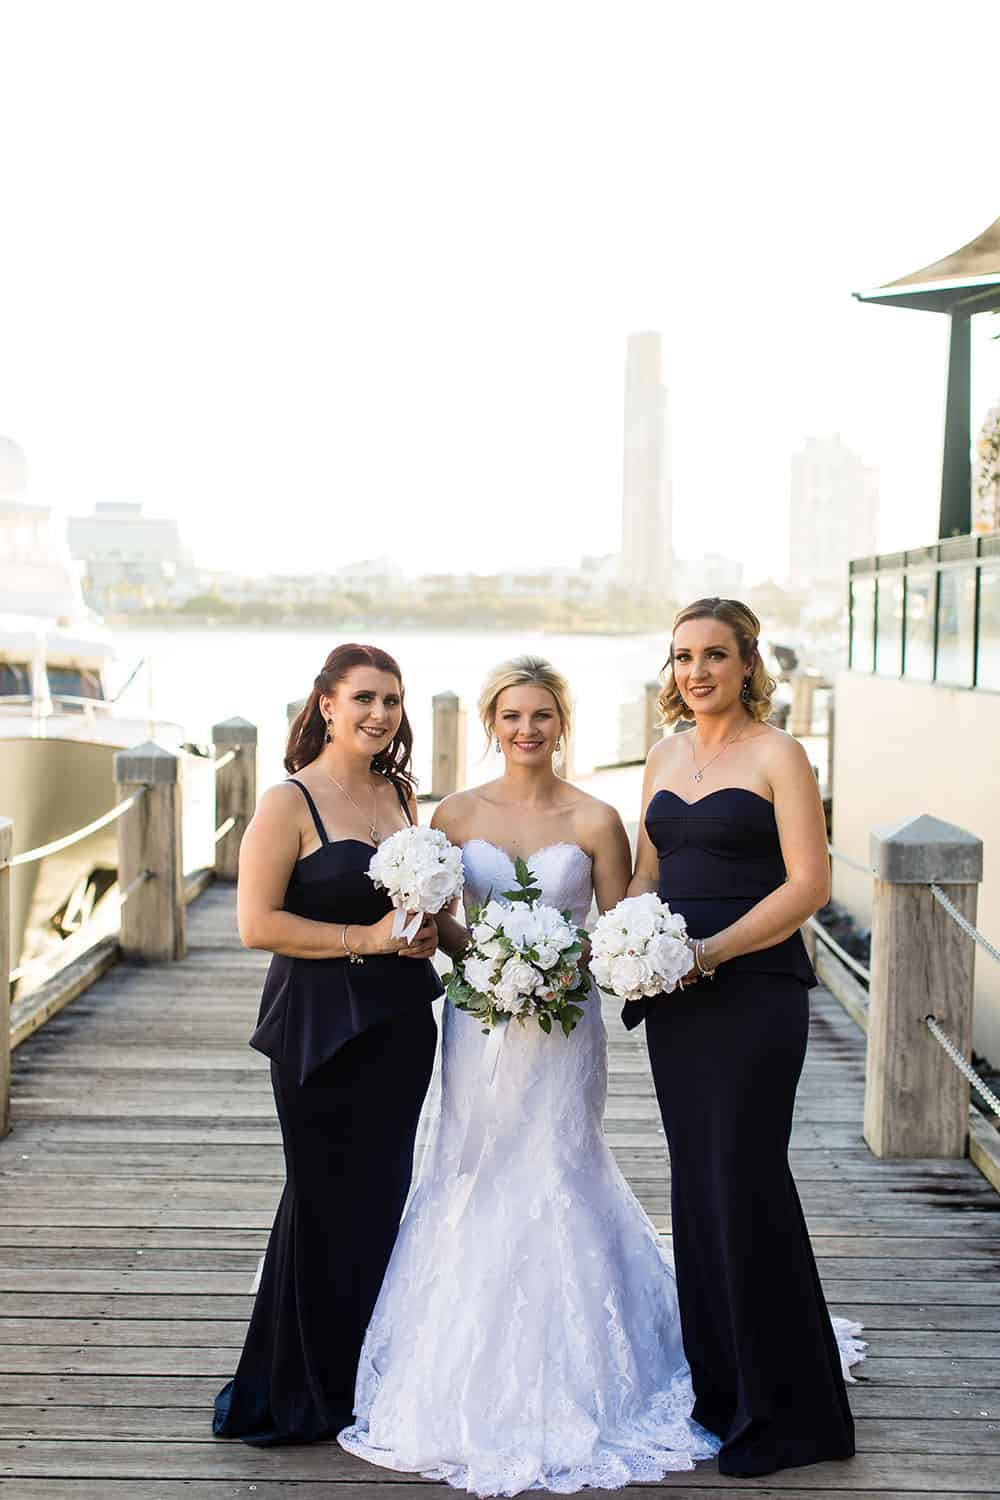 Renee and her bridesmaids